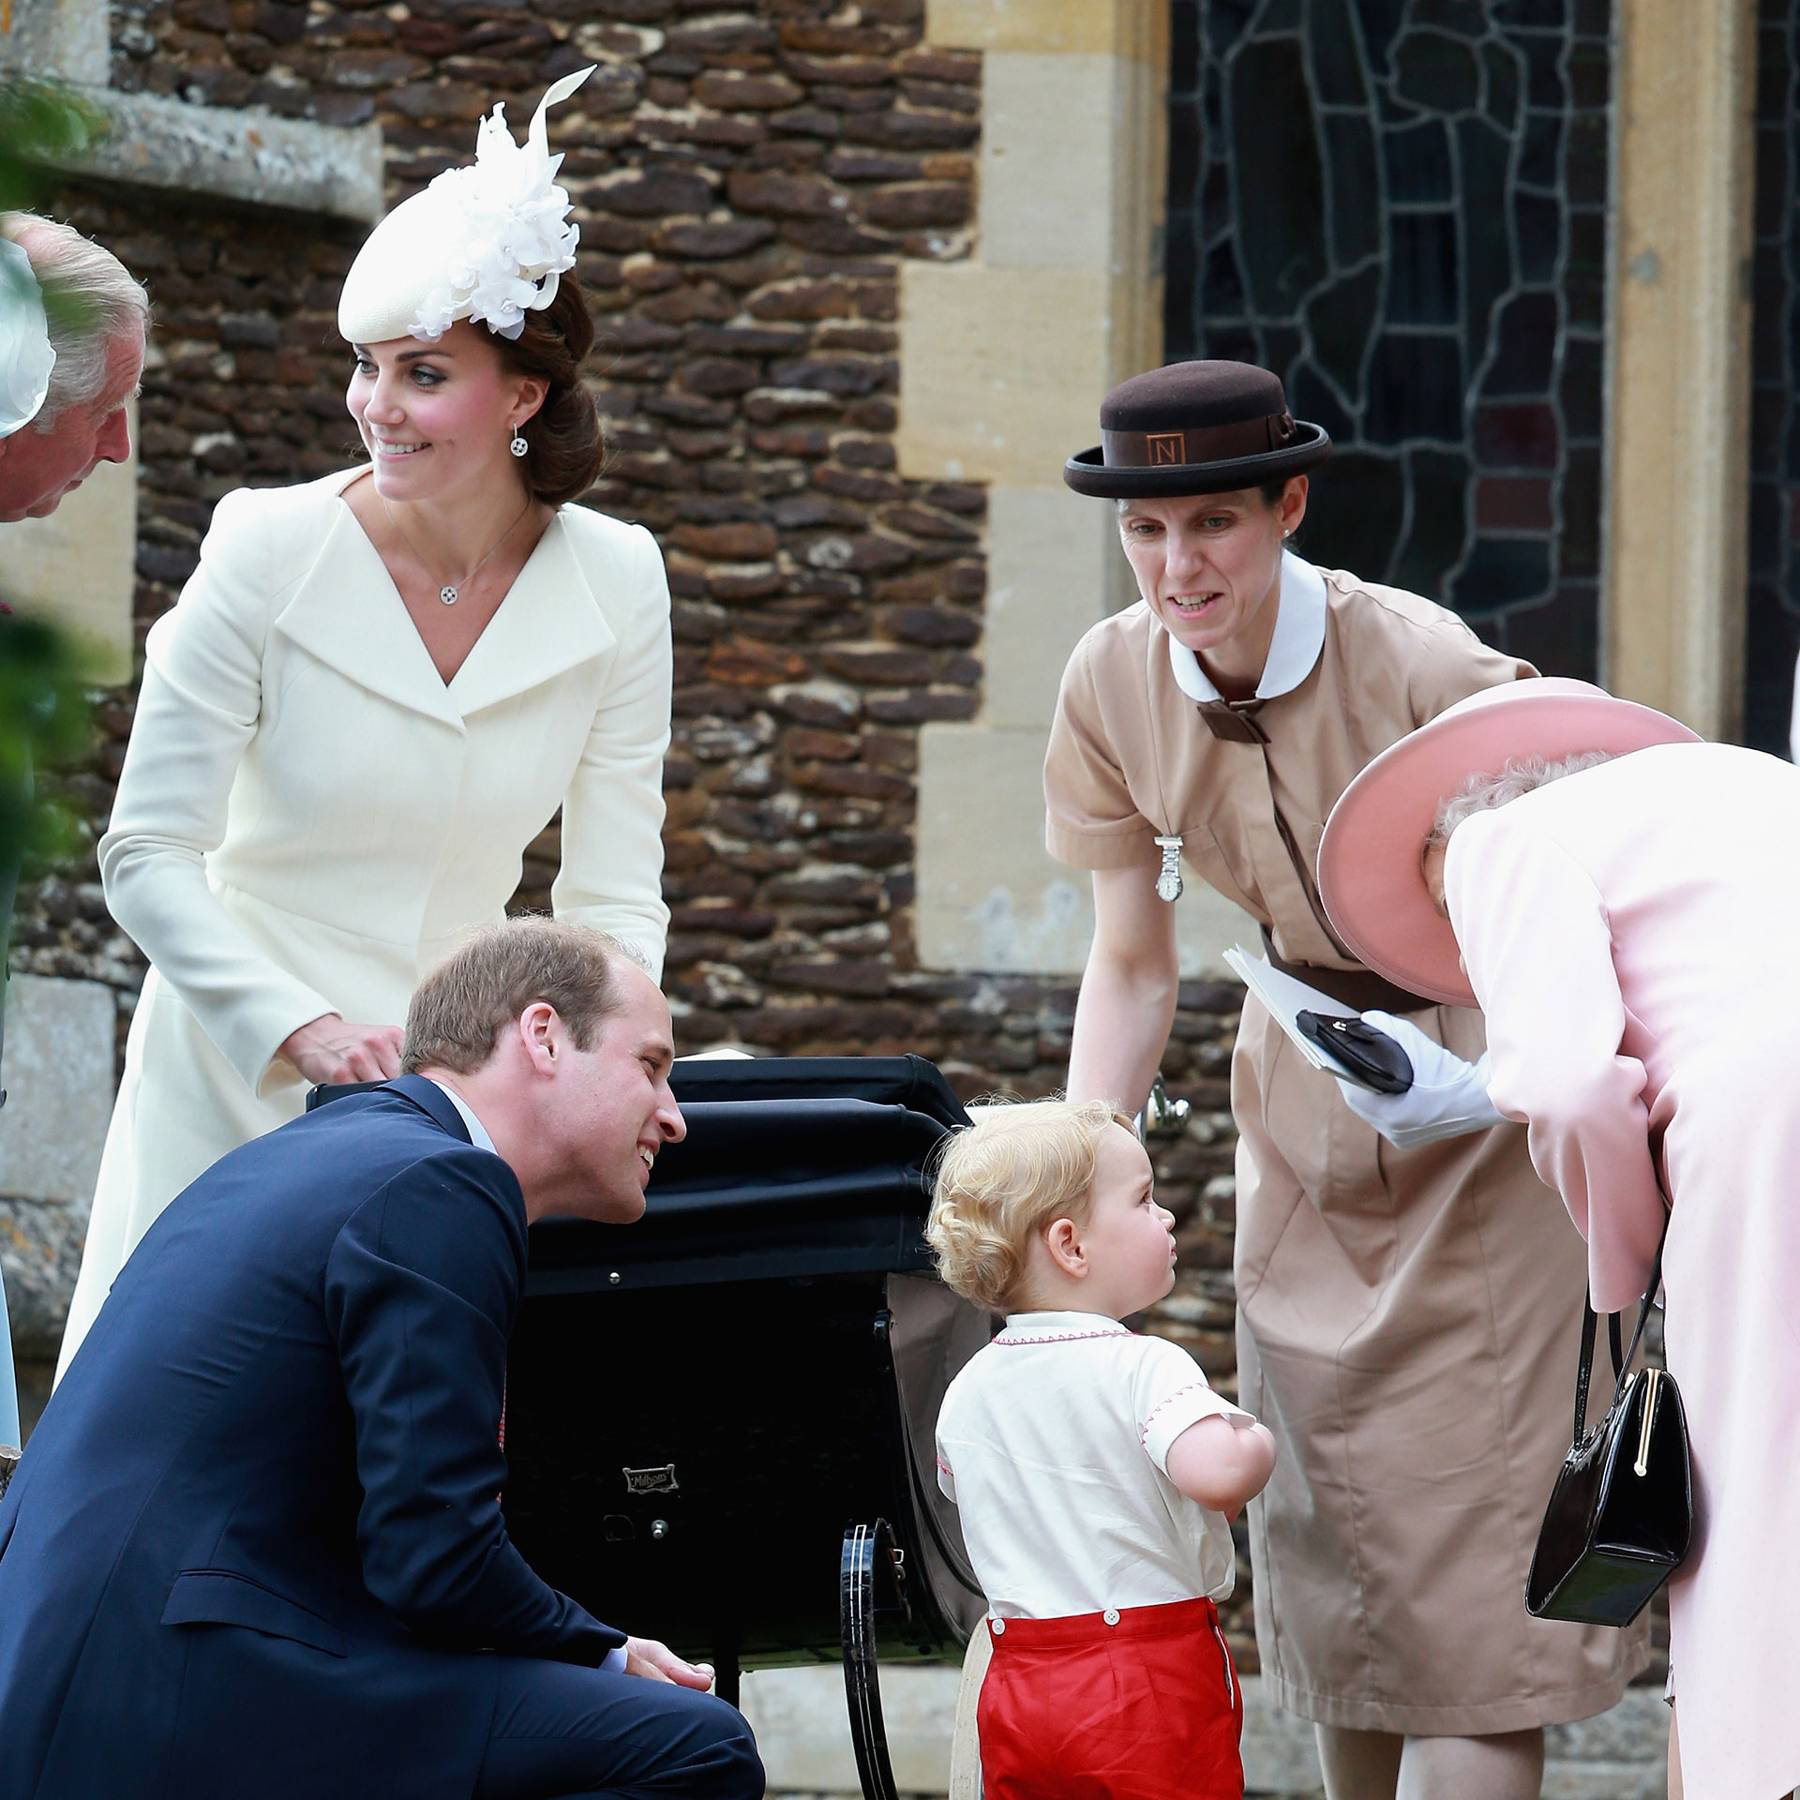 This is how a Norland Nanny keeps royal children well-behaved